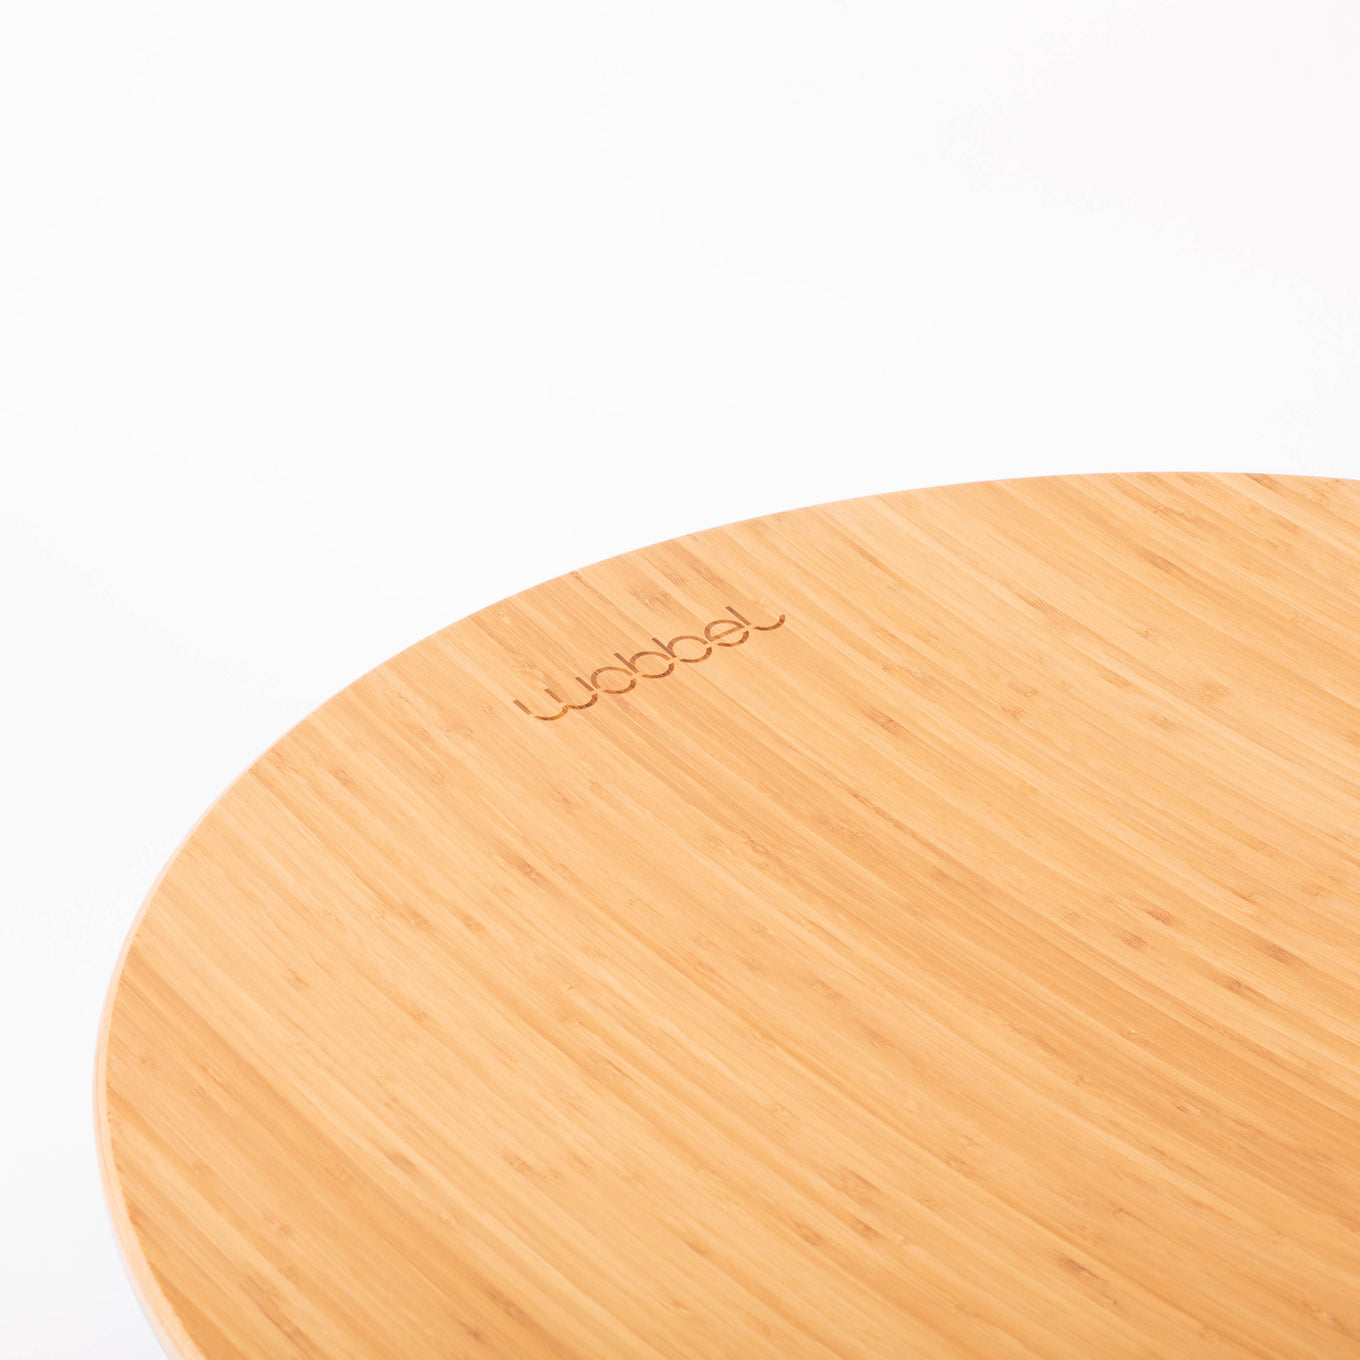 Wobbel 360 Bamboo | Baby Mouse